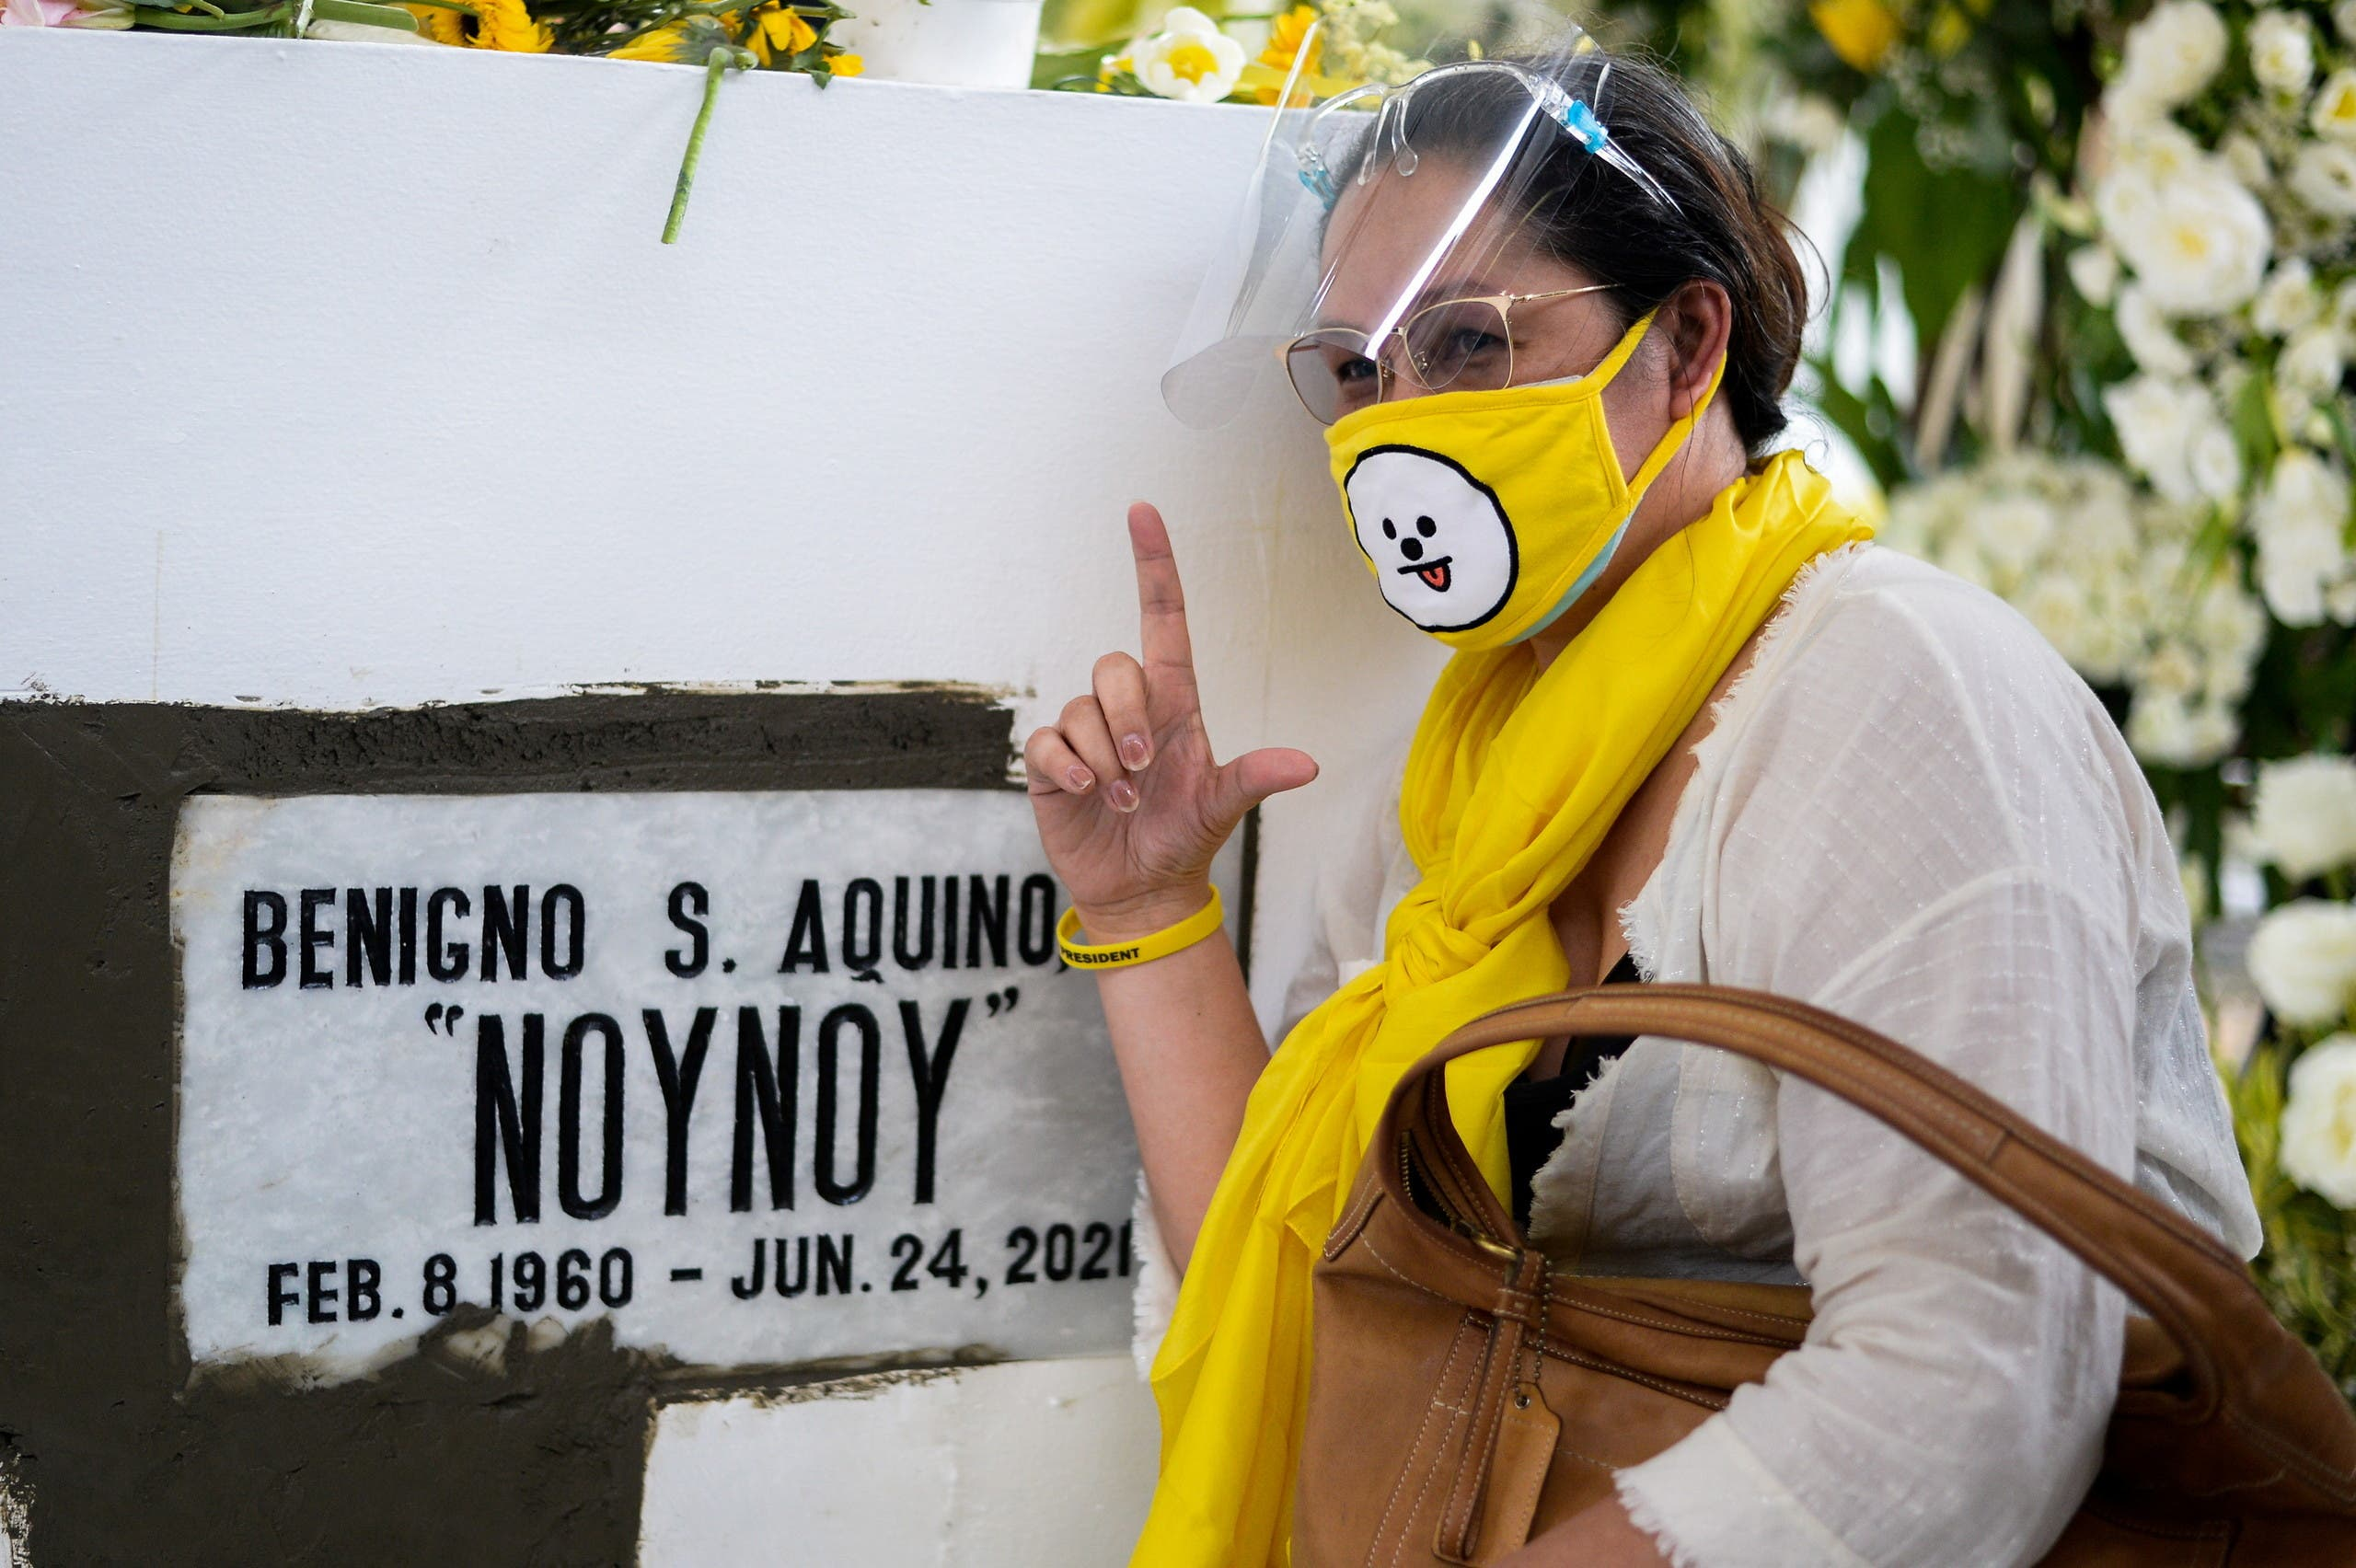 A woman flashes the 'L' sign for the Filipino word laban which means fight, following the burial of Philippine President Benigno Aquino III, at the Manila Memorial Park, in Paranaque city, Metro Manila, Philippines, June 26, 2021. (Reuters)